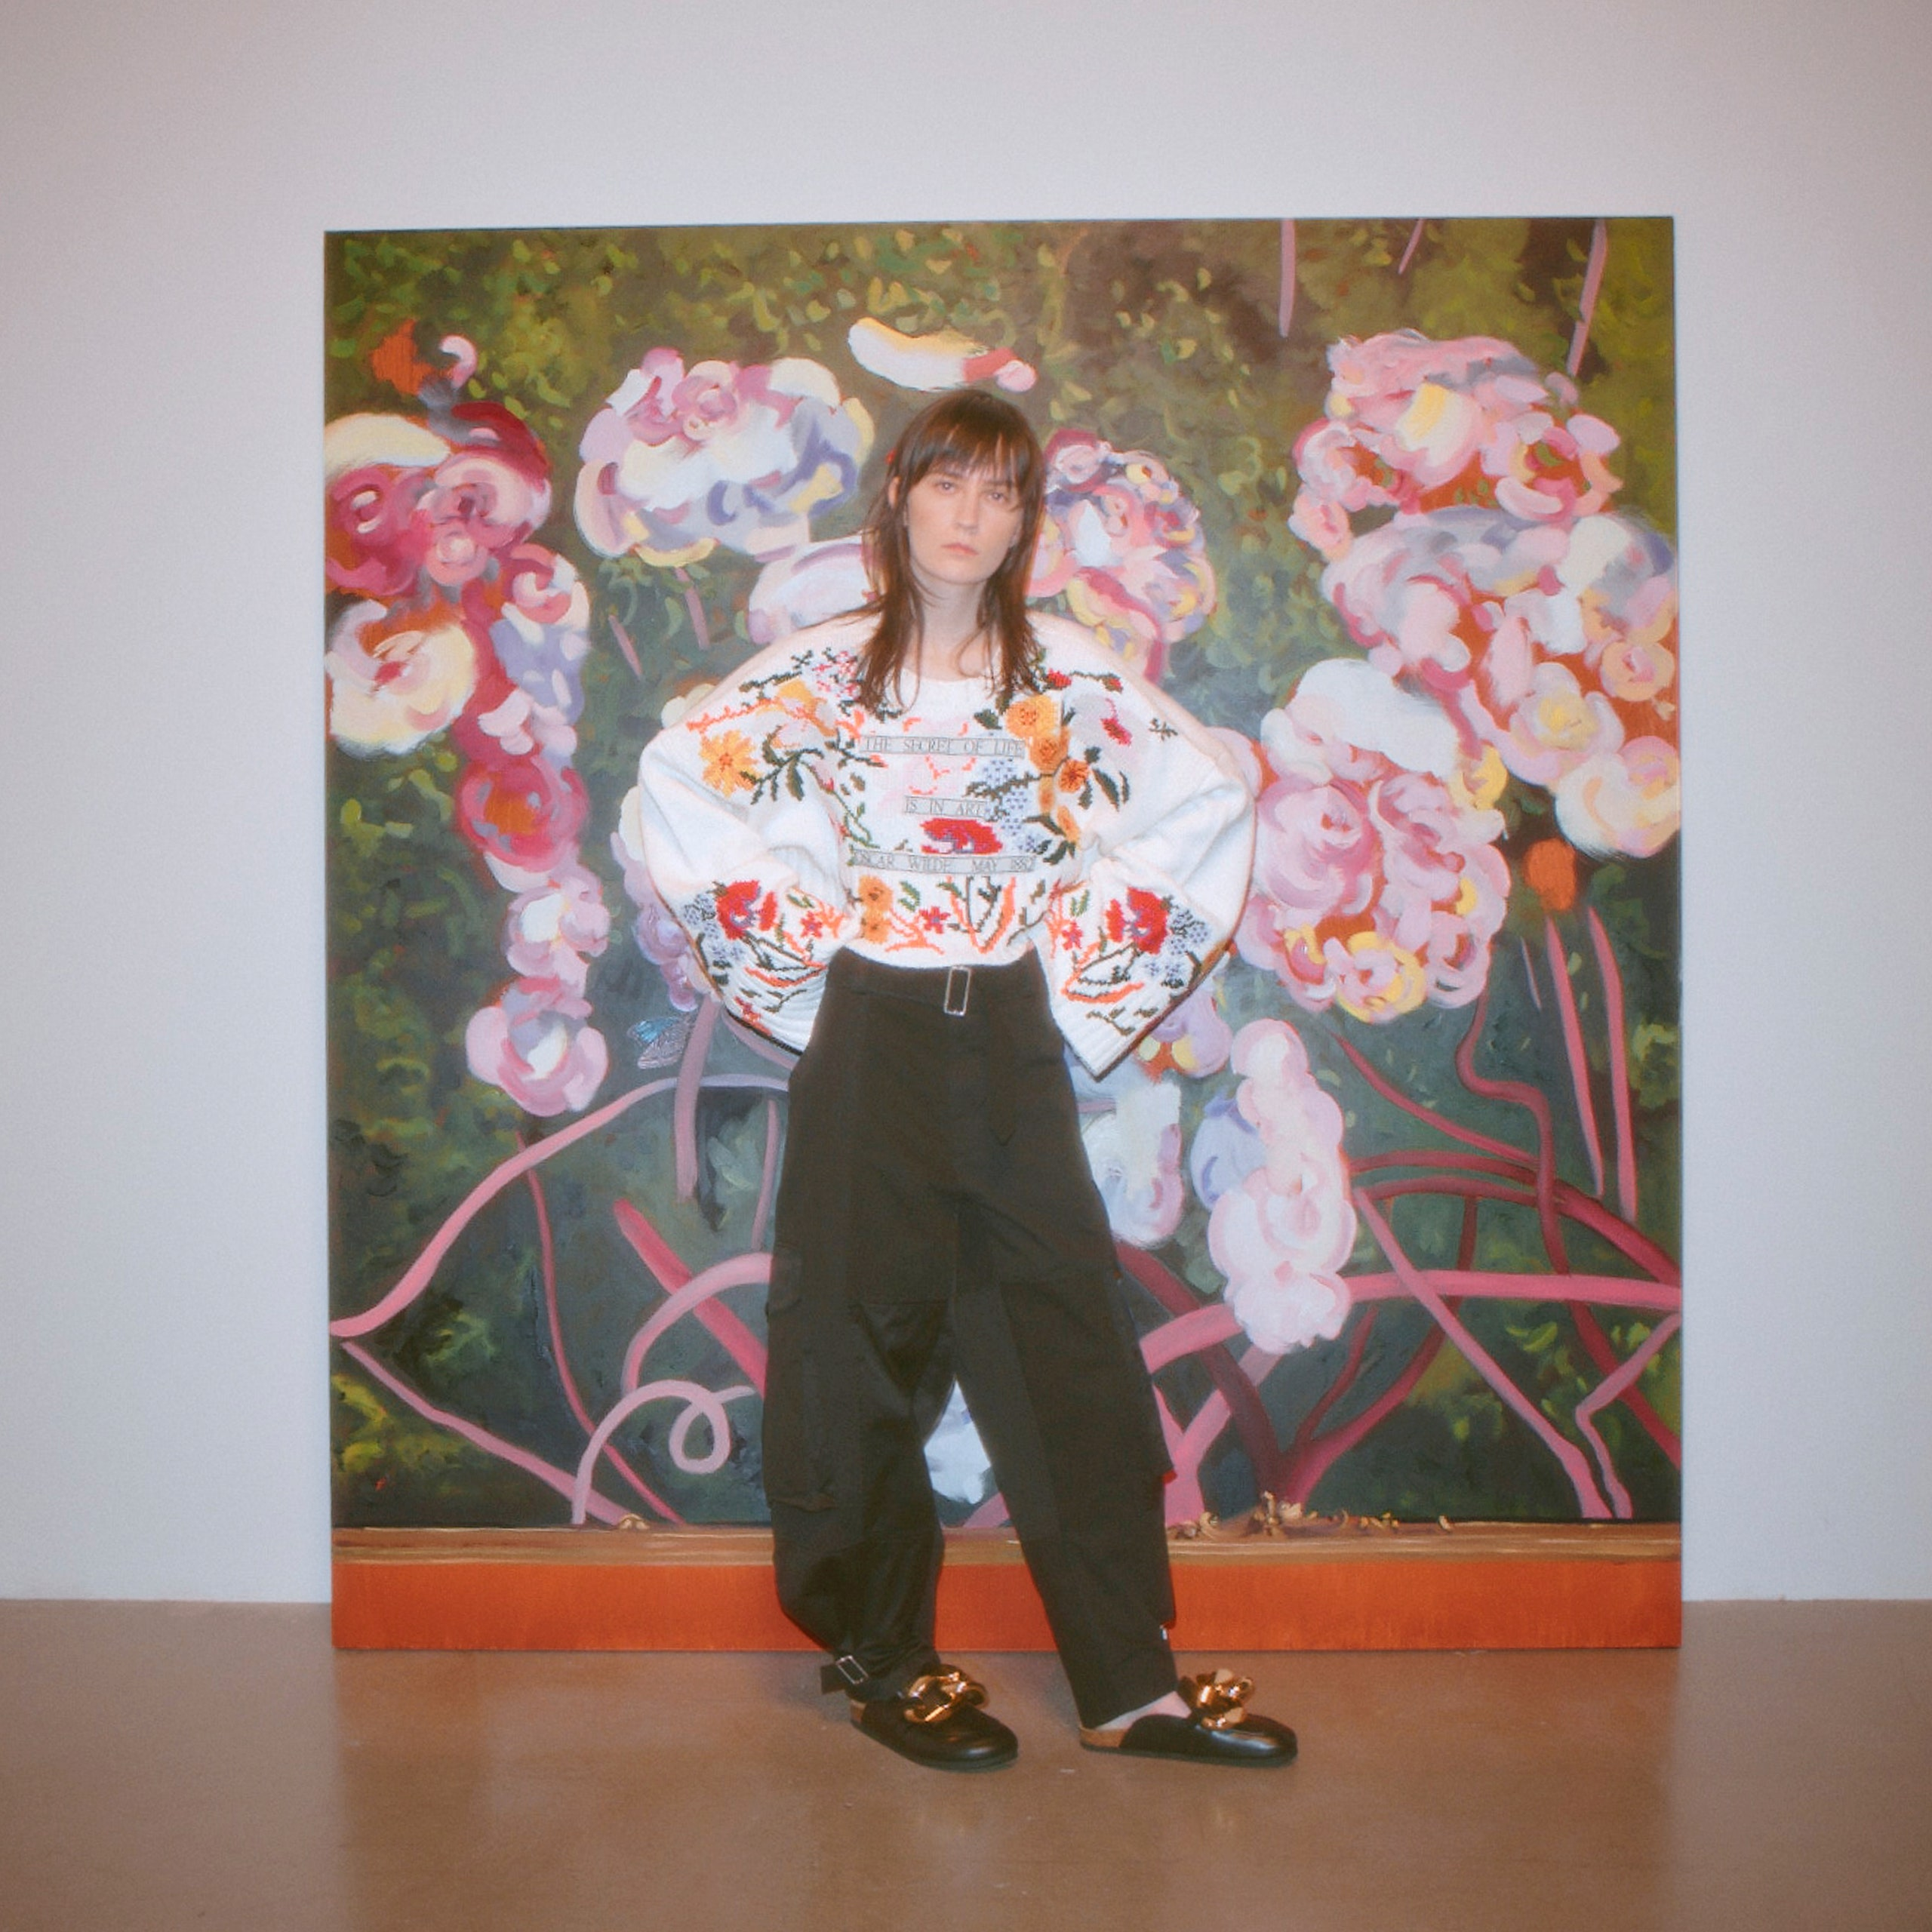 Referencing and Copying in Fashion: Judith Watt in Conversation with Oleg Mitrofanov